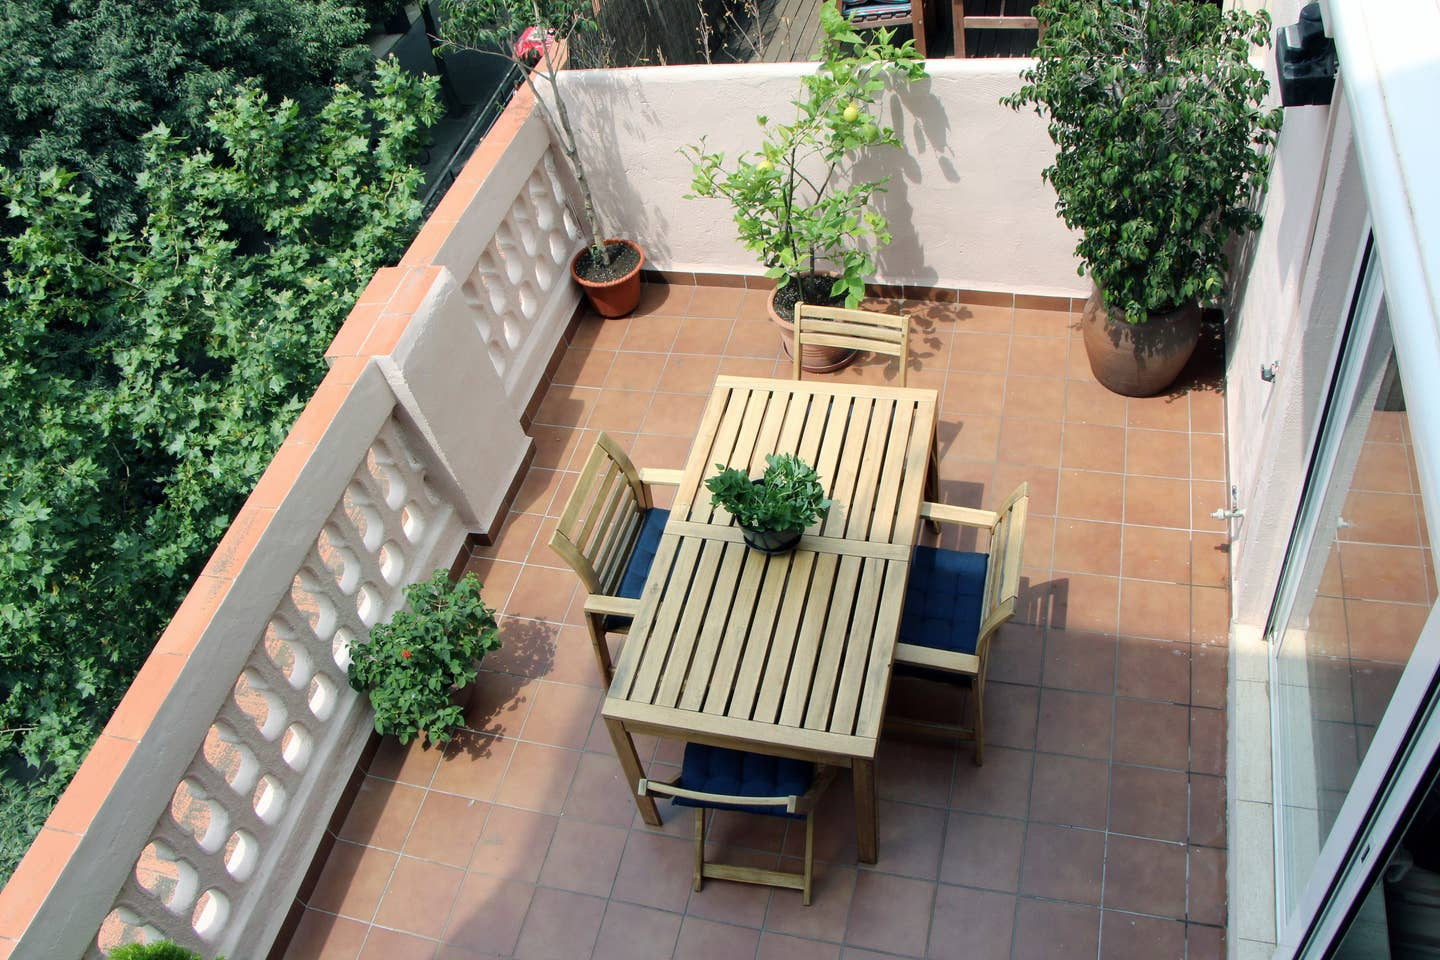 Apartment in Barcelona - eixample. Terrace.3 bedrooms. For sale: 500.000 €.